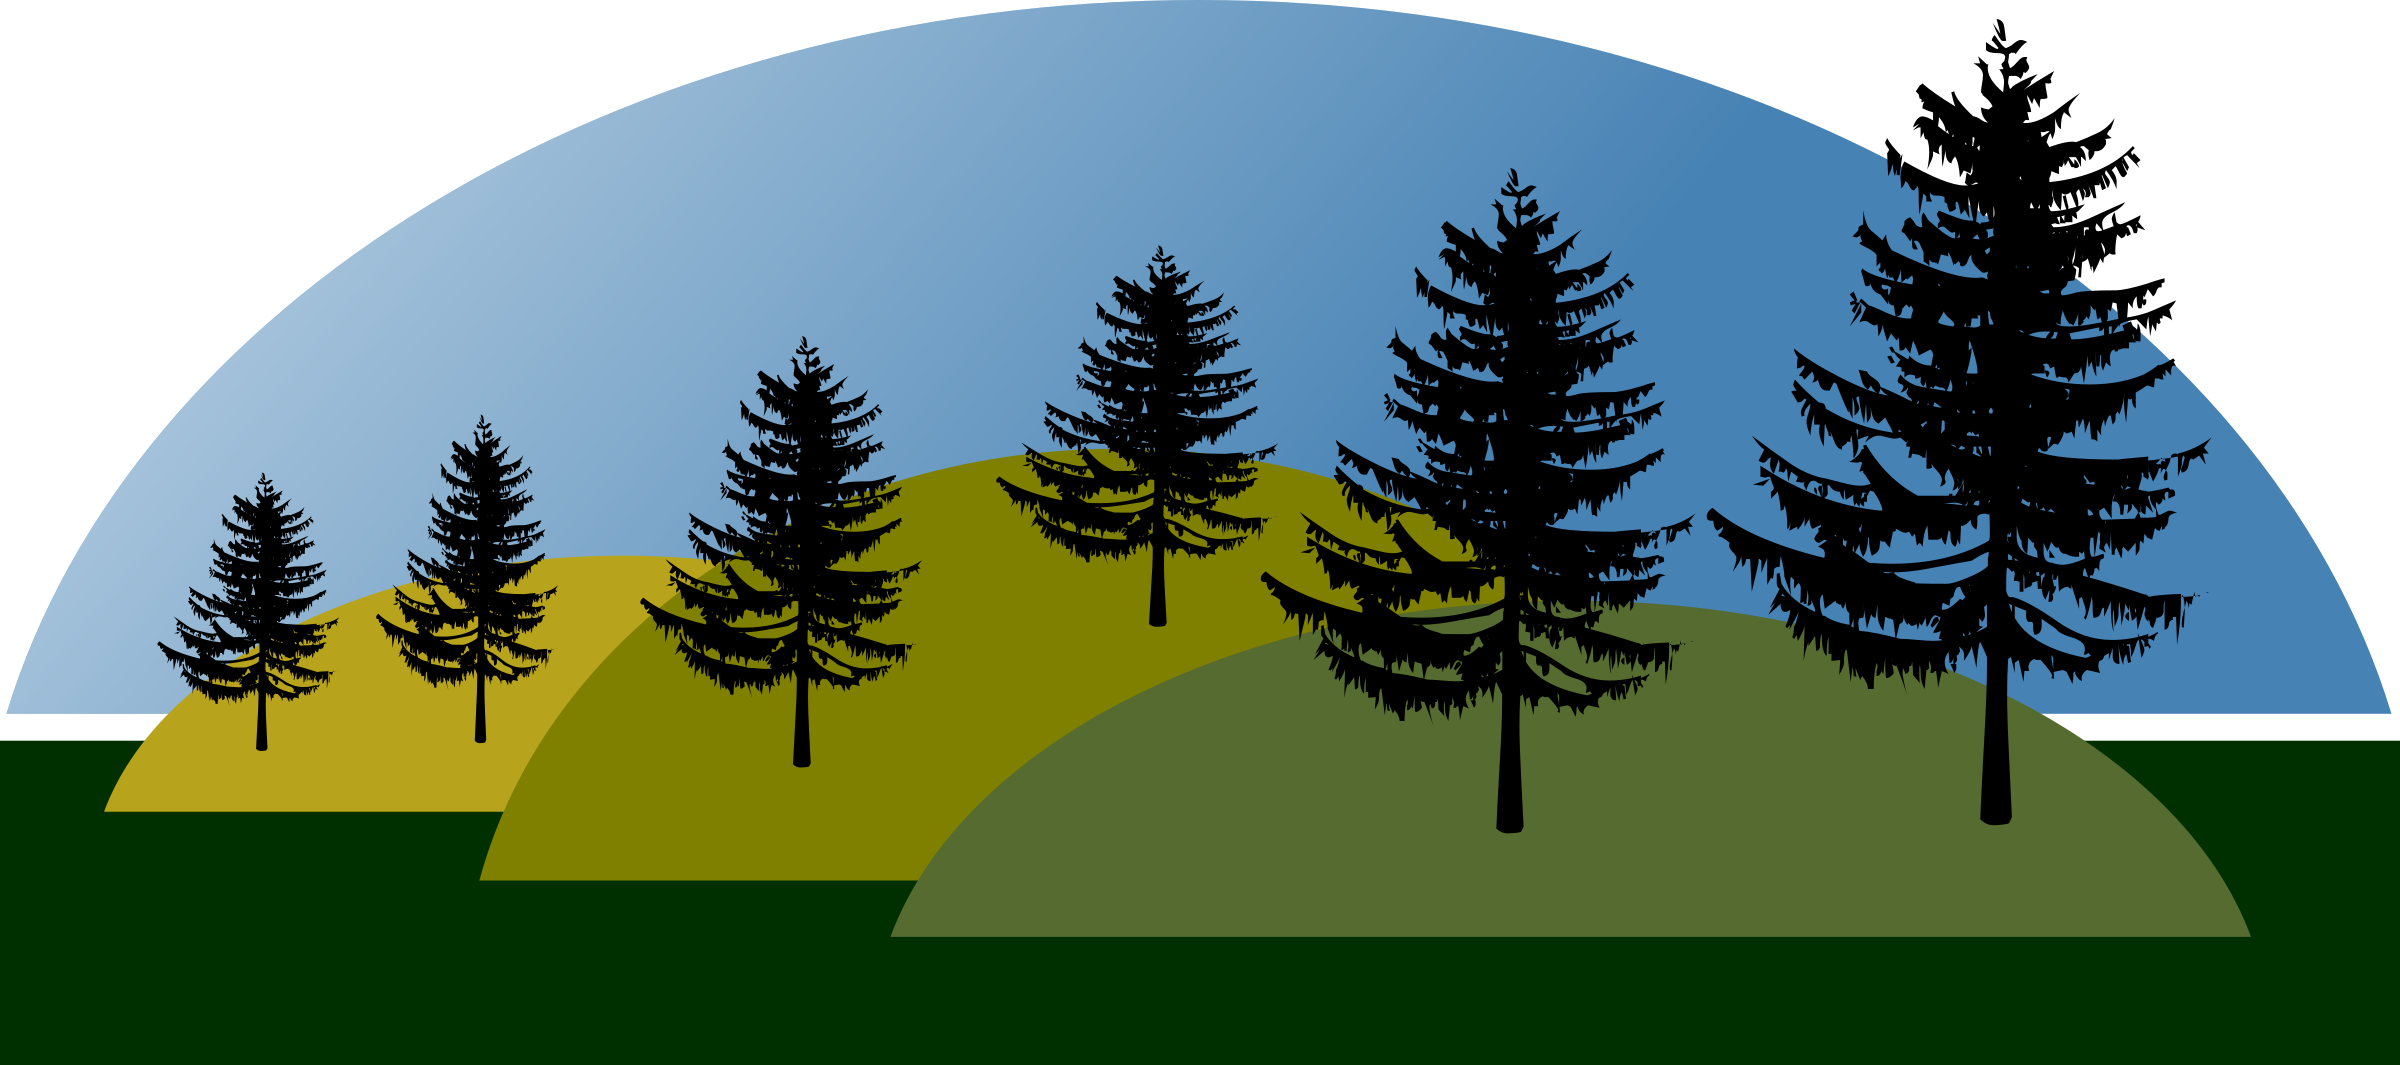 Montanhas big image png. Forest clipart mountains vector black and white library